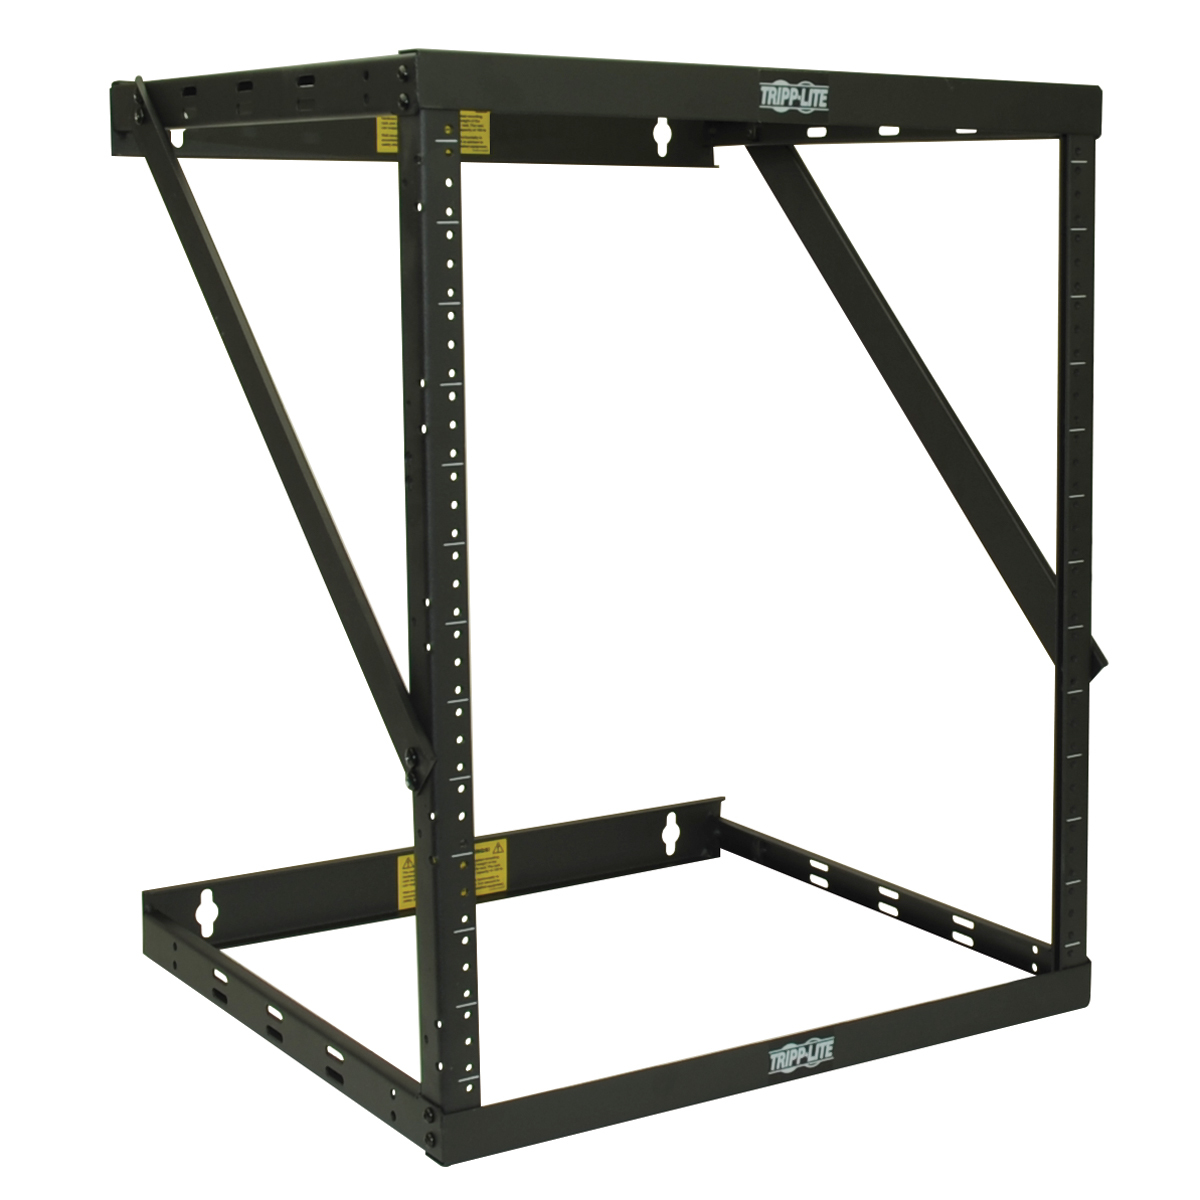 Tripp Lite SmartRack 8U/12U/22U Expandable Flat-Pack Low-Profile Switch-Depth Wall-Mount 2-Post Open Frame Rack